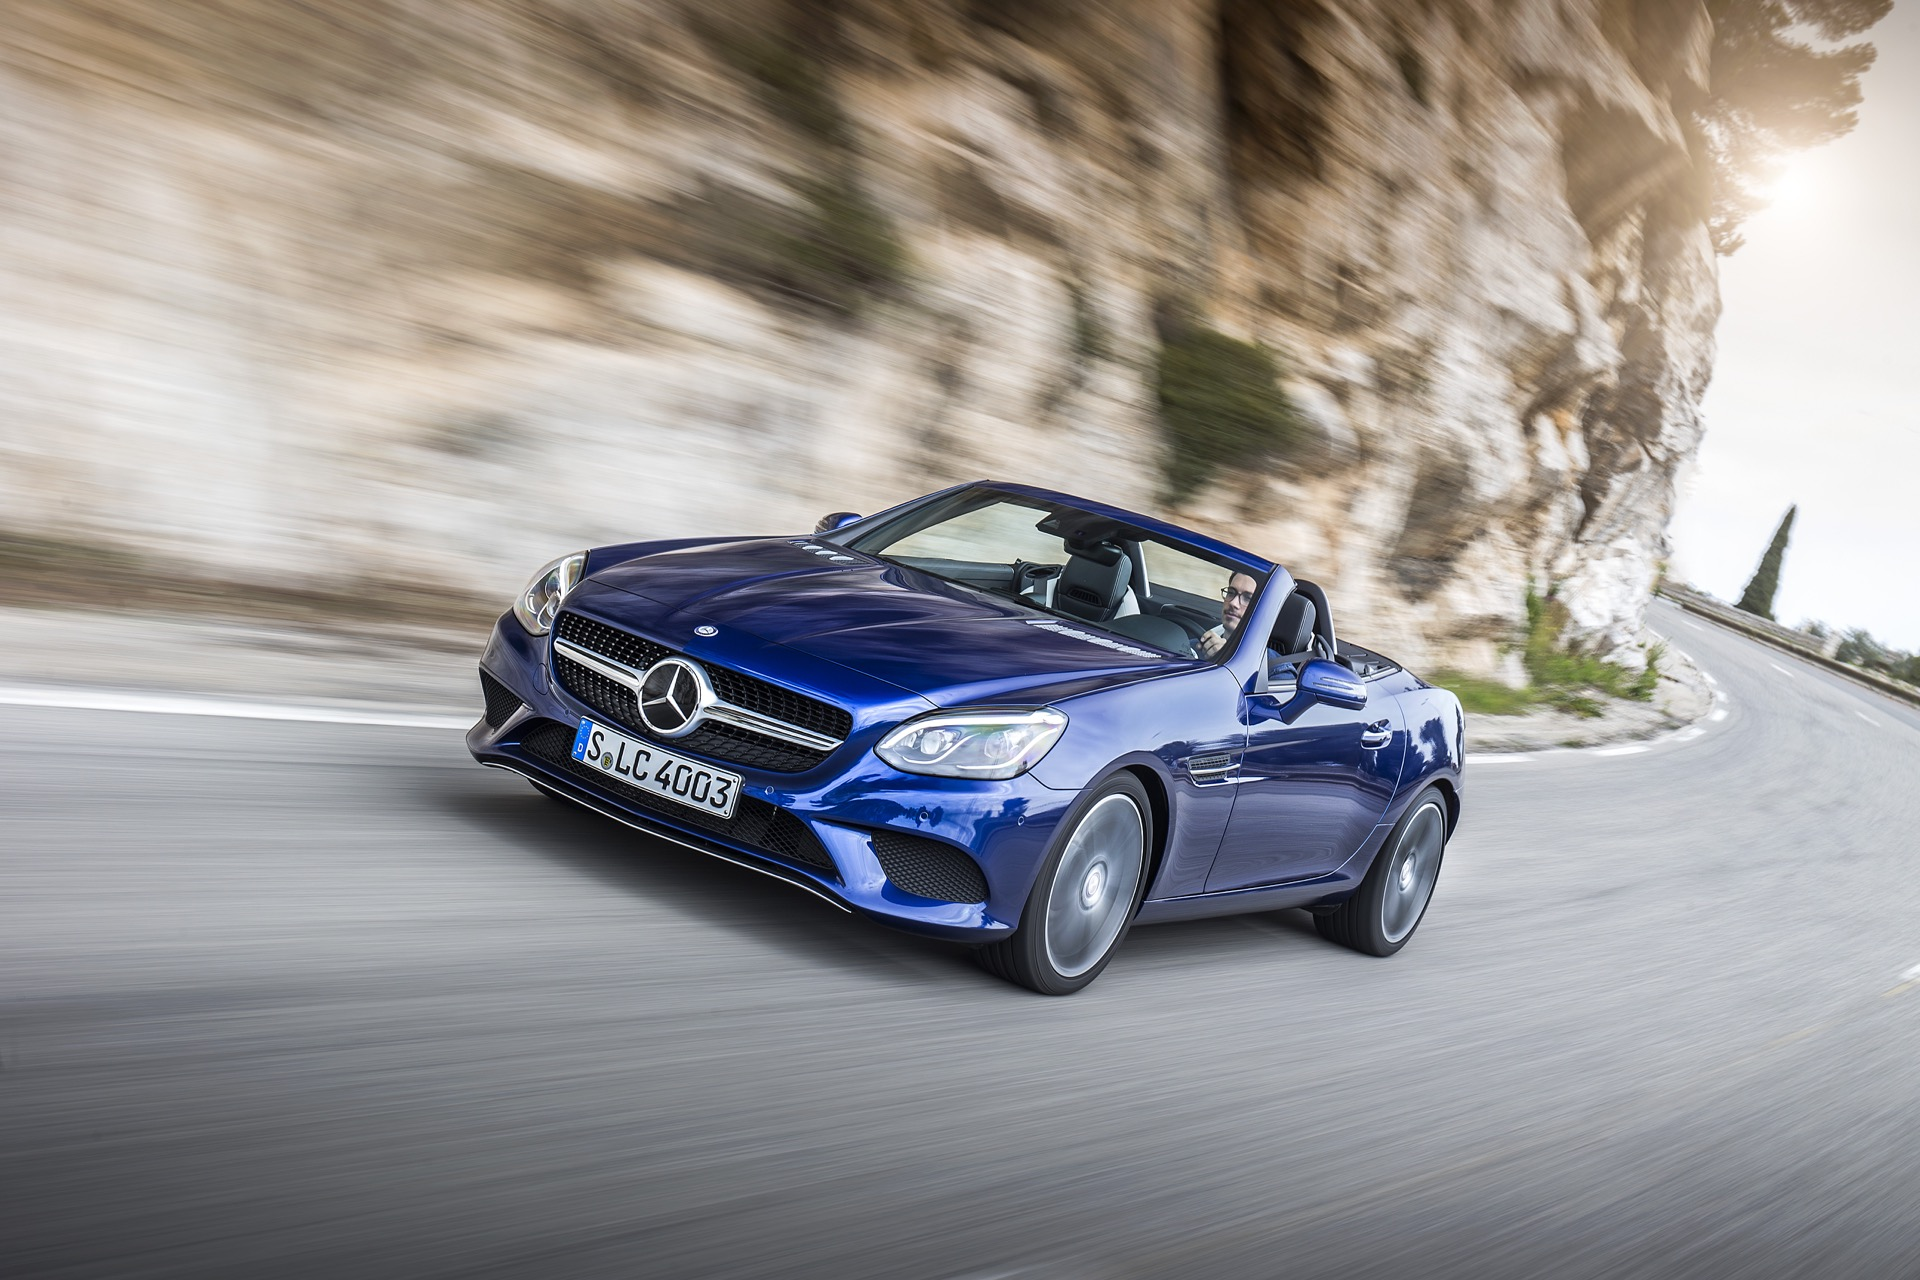 Cars For Sale Denver >> 2017 Mercedes-Benz SLC Class Features Review - The Car Connection